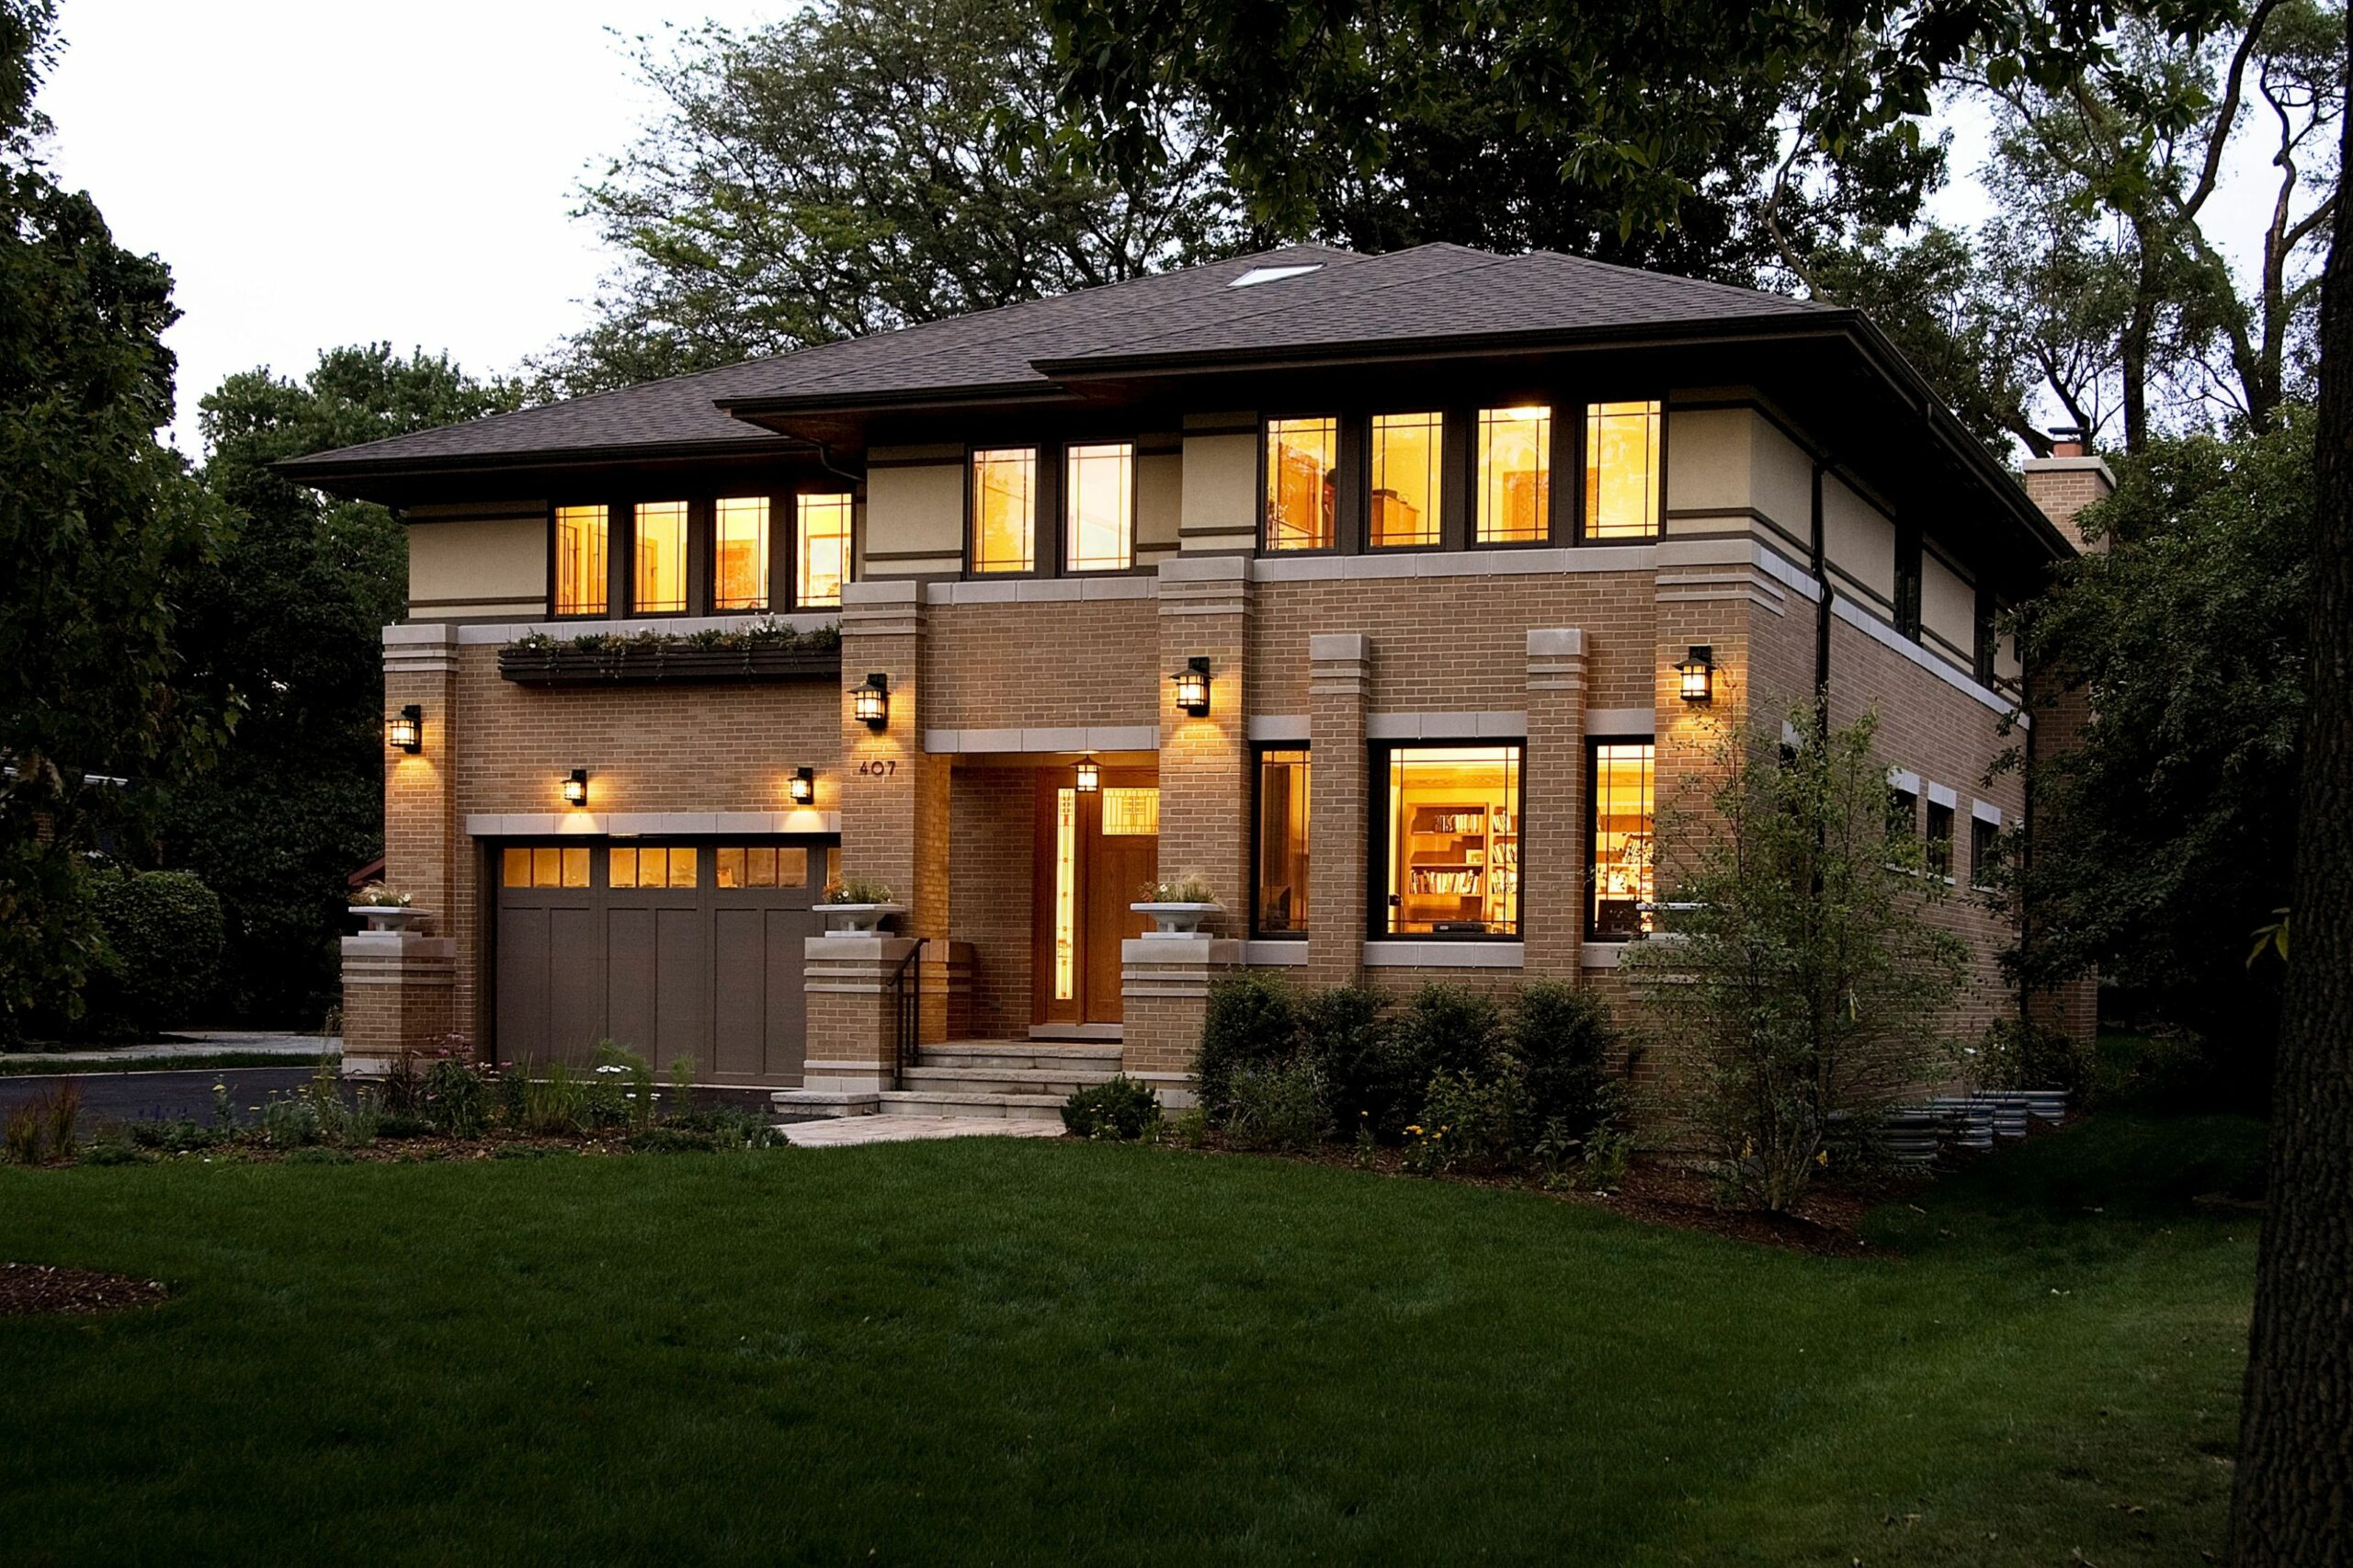 Residential Gallery (With images) | Prairie style houses, House ...